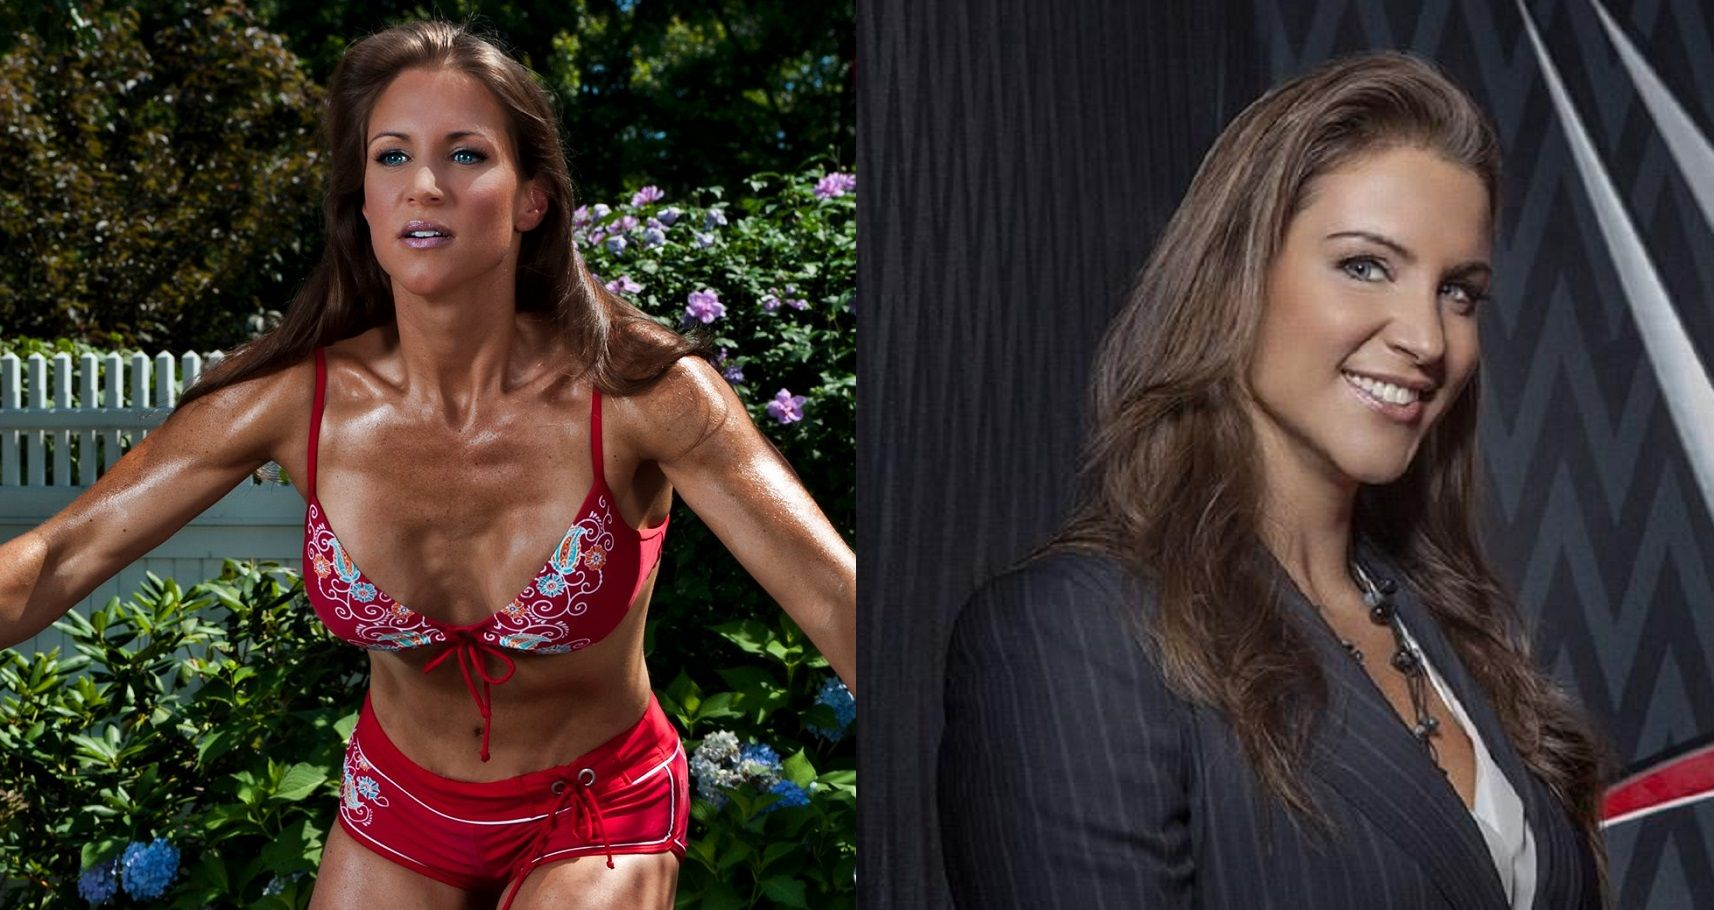 16 Must See Pictures Of WWE's Stephanie McMahon